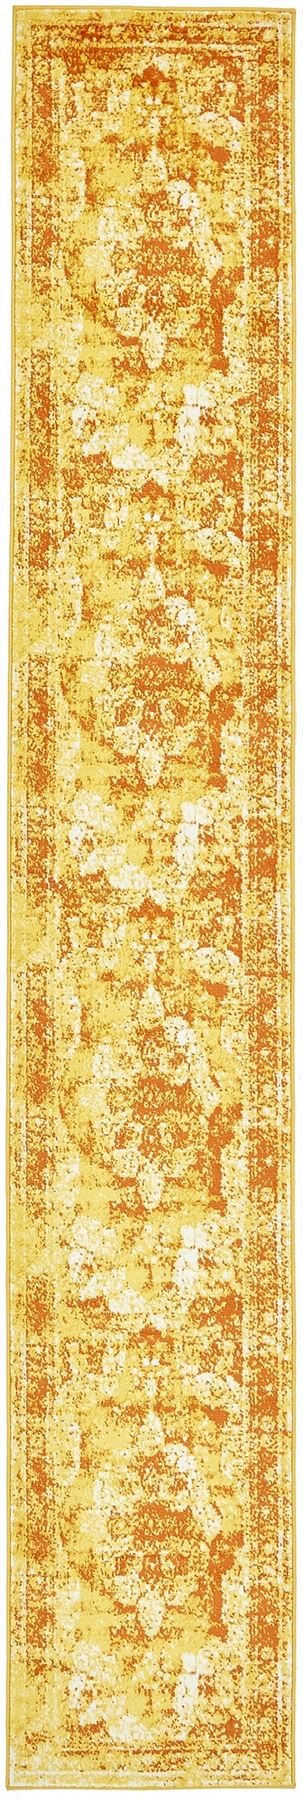 Traditional-Inspired-Persian-Faded-Transitional-Area-Rug-Multi-Color-ALL-SIZES thumbnail 44